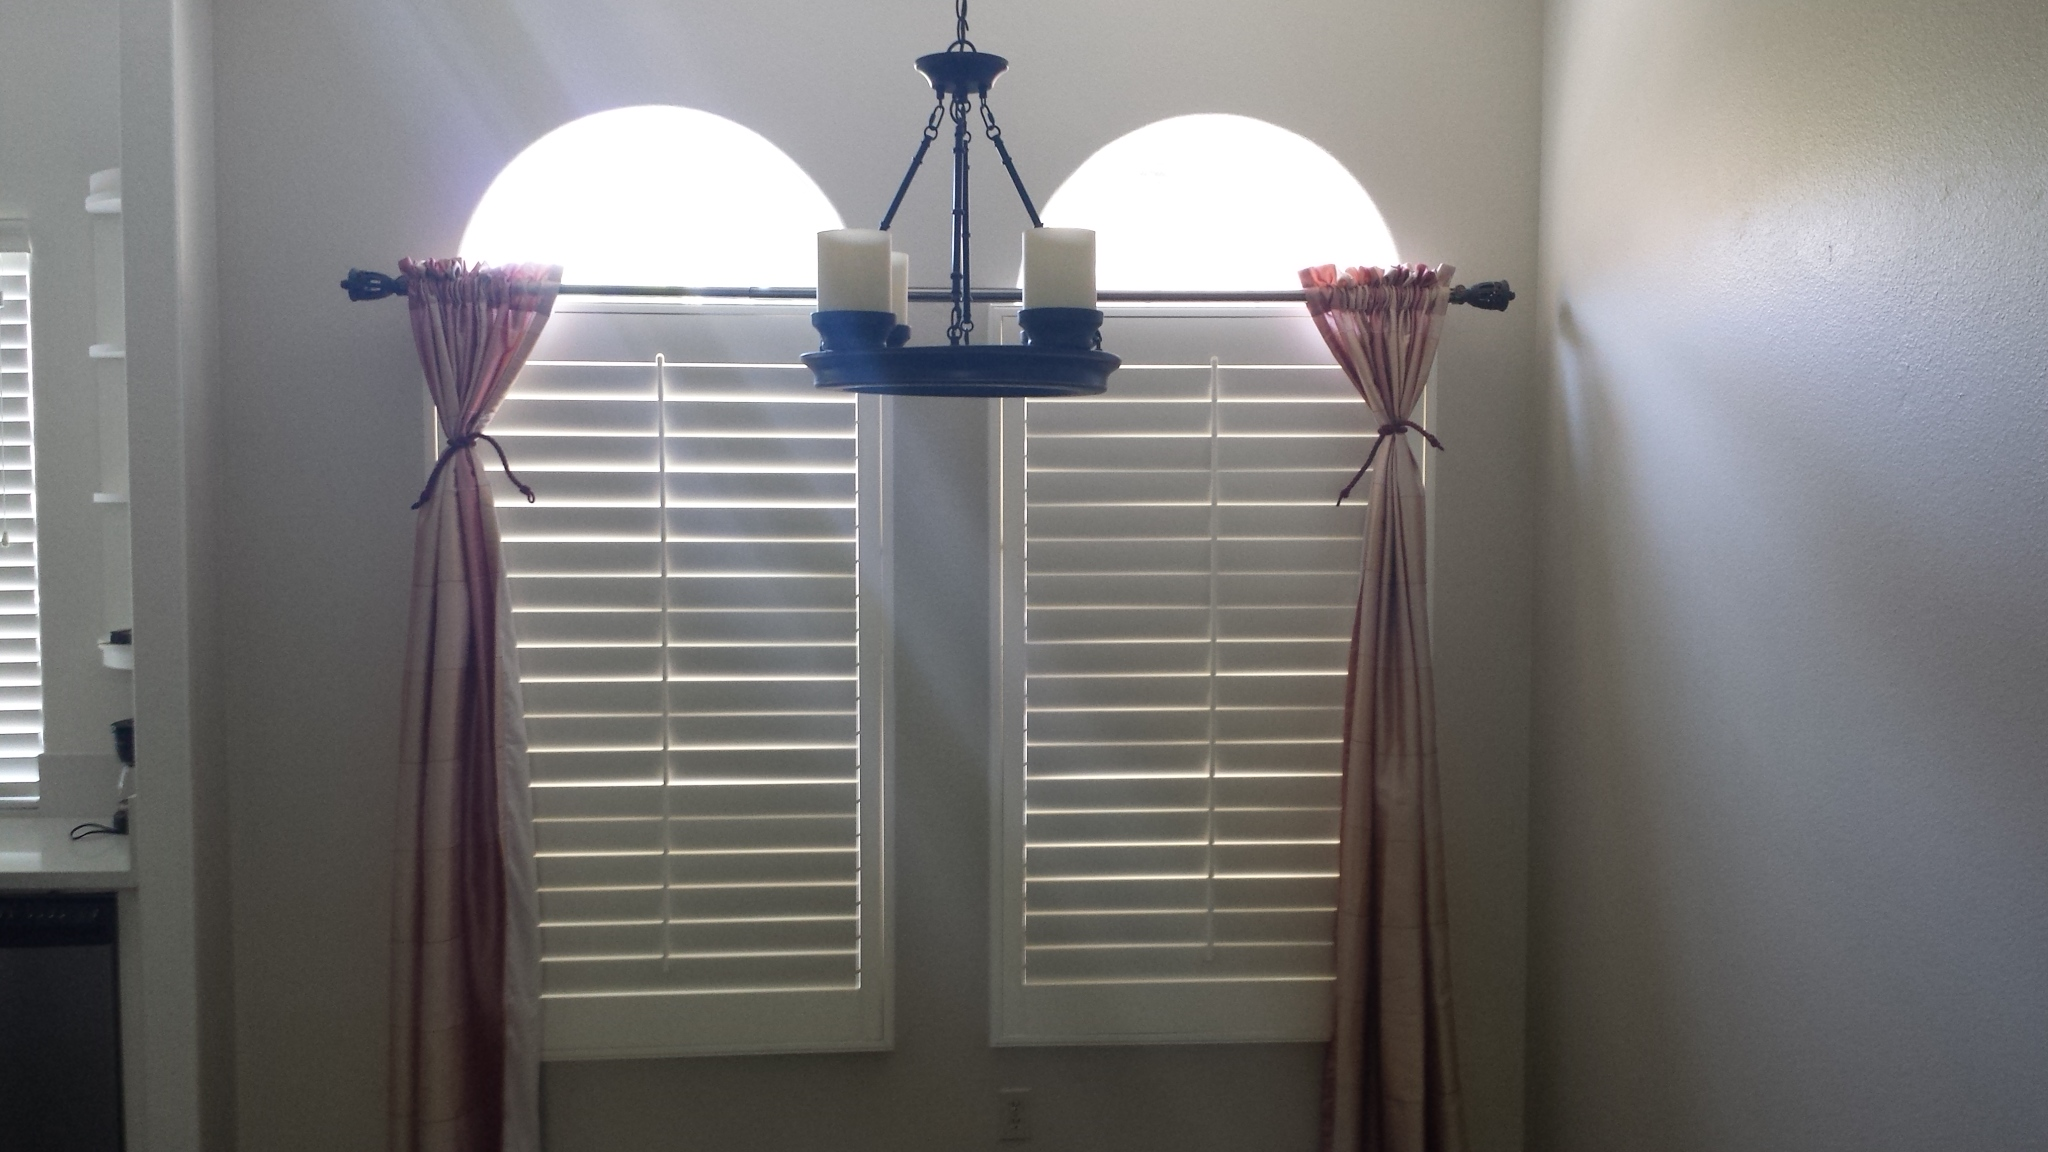 Drapes over shutters